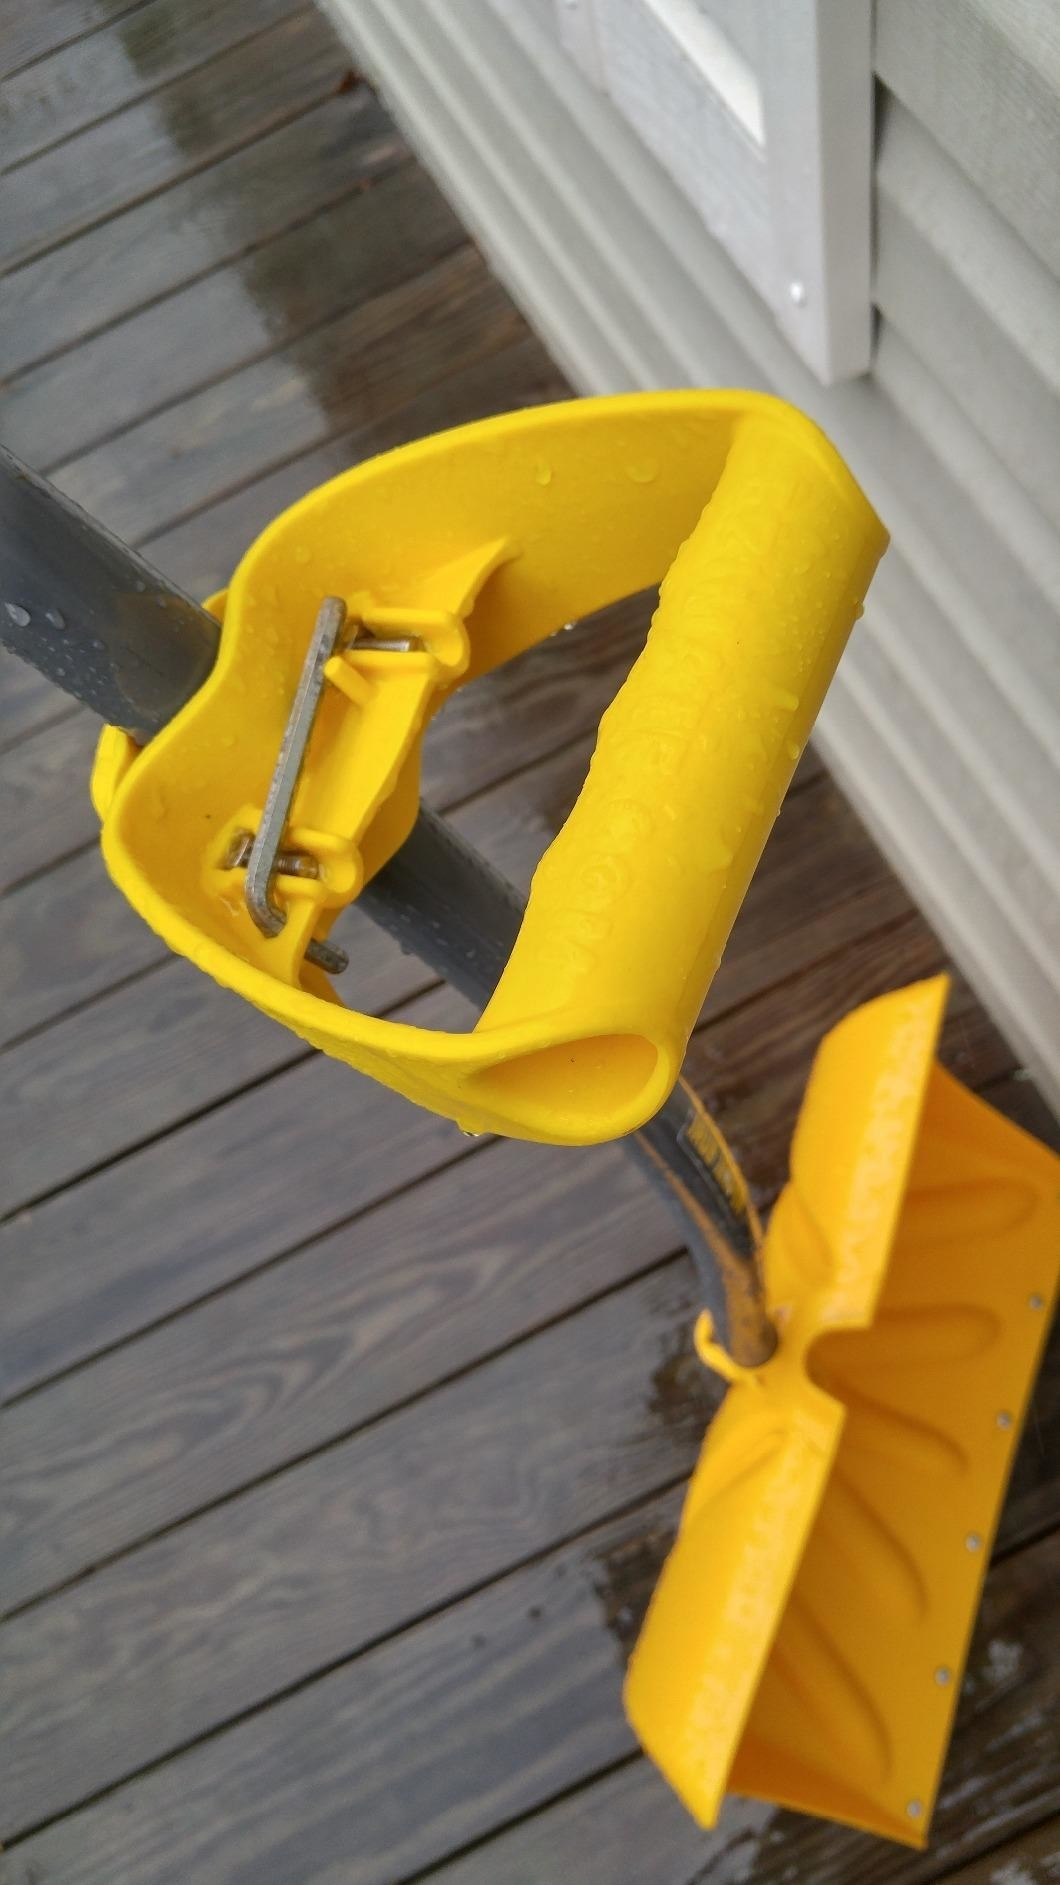 The attachment, which has a handle grip, attached to a shovel